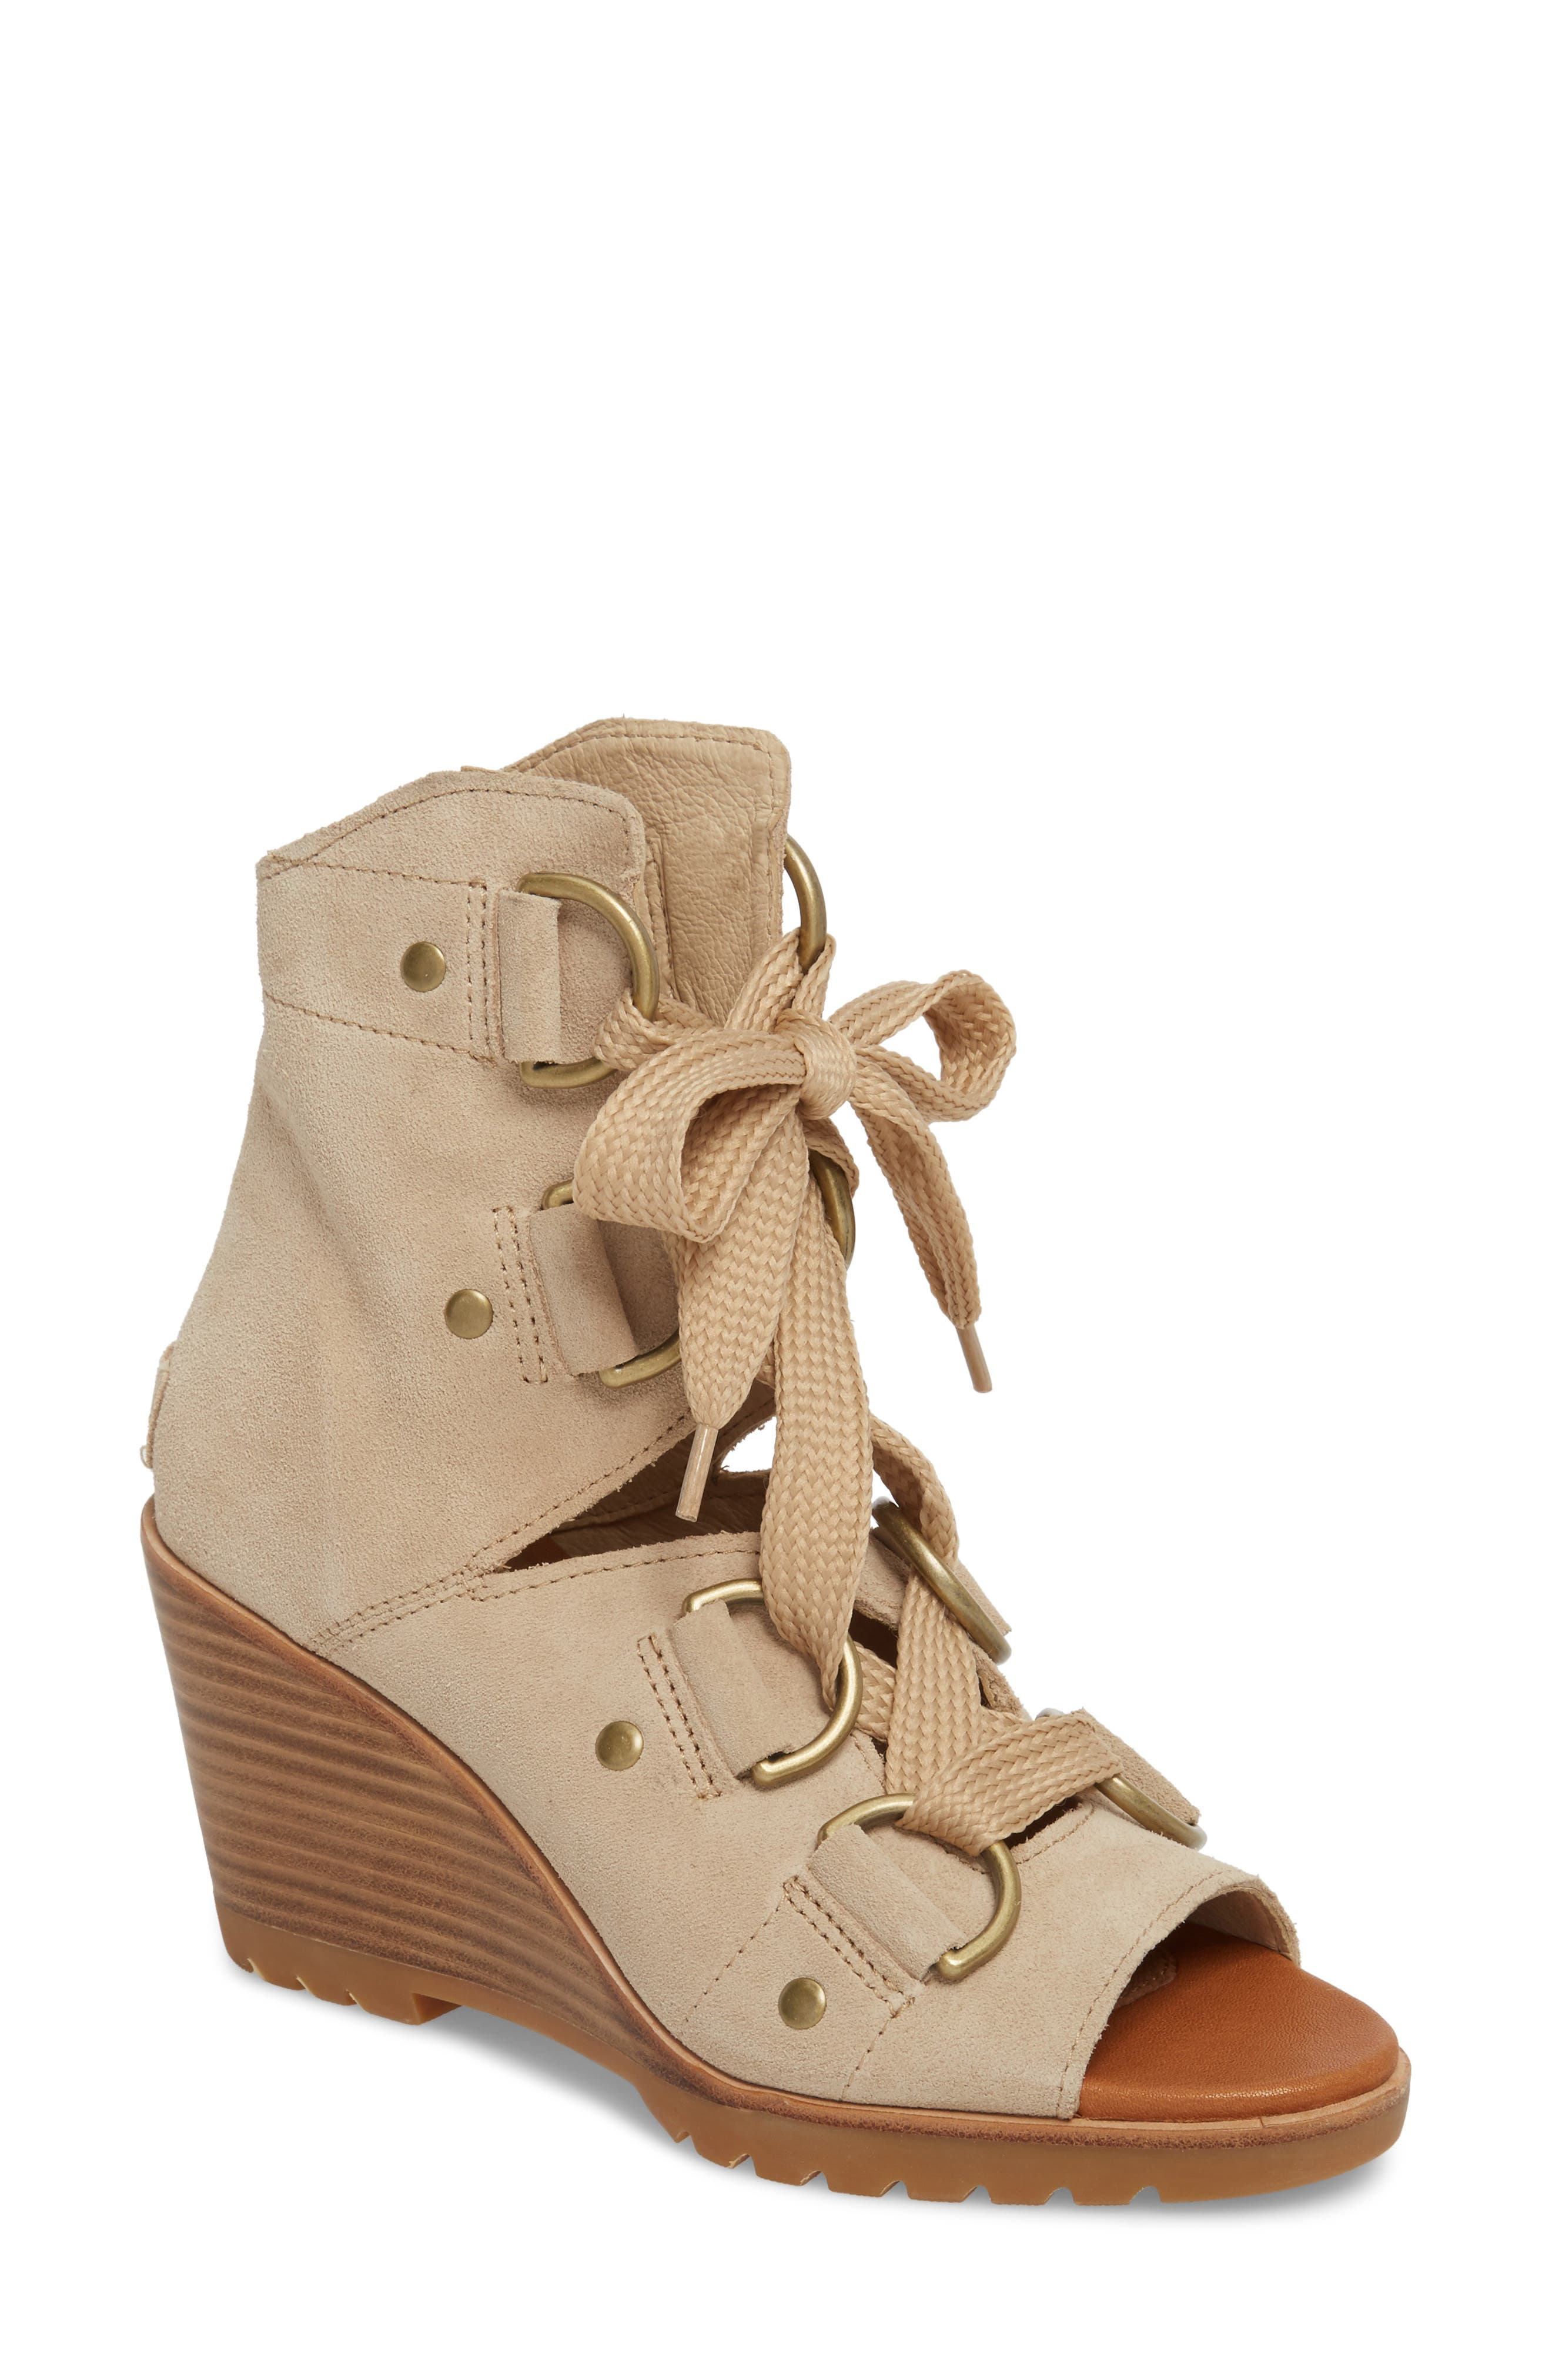 After Hours Wedge Bootie,                         Main,                         color, Oatmeal